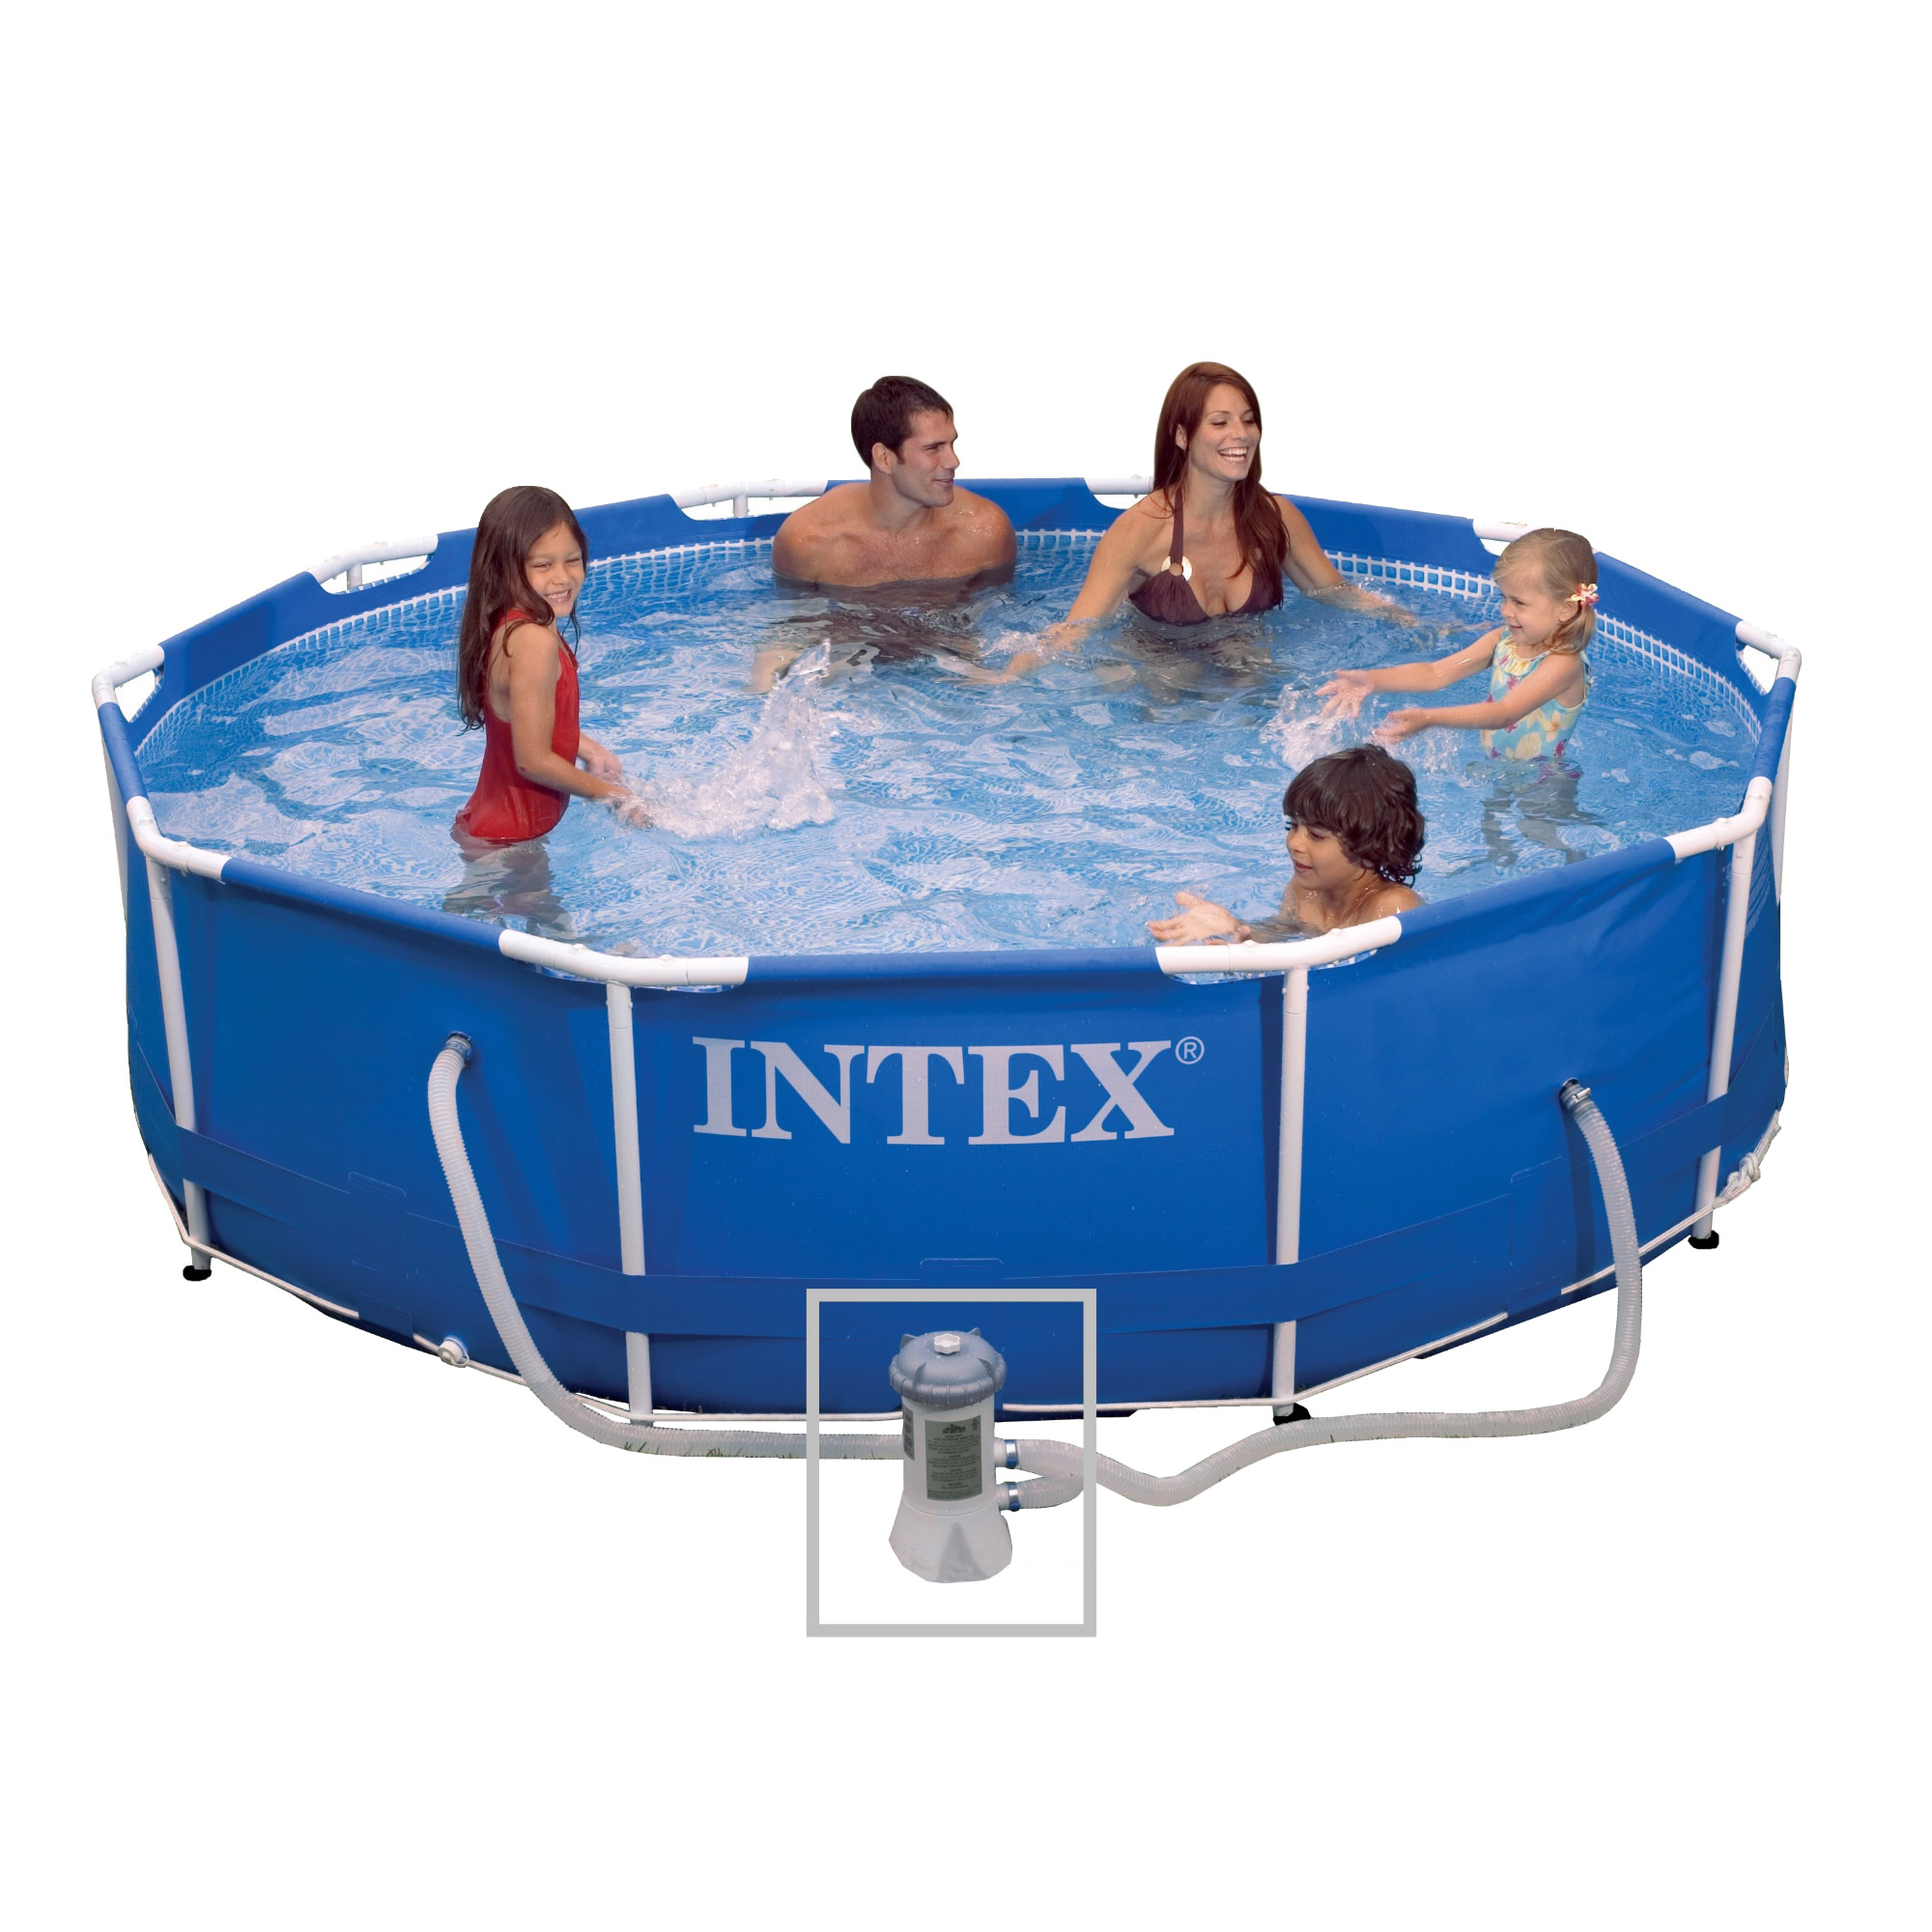 Intex 28202fr piscine hors sol tubulaire ronde 305 x - Piscine hors sol intex ...